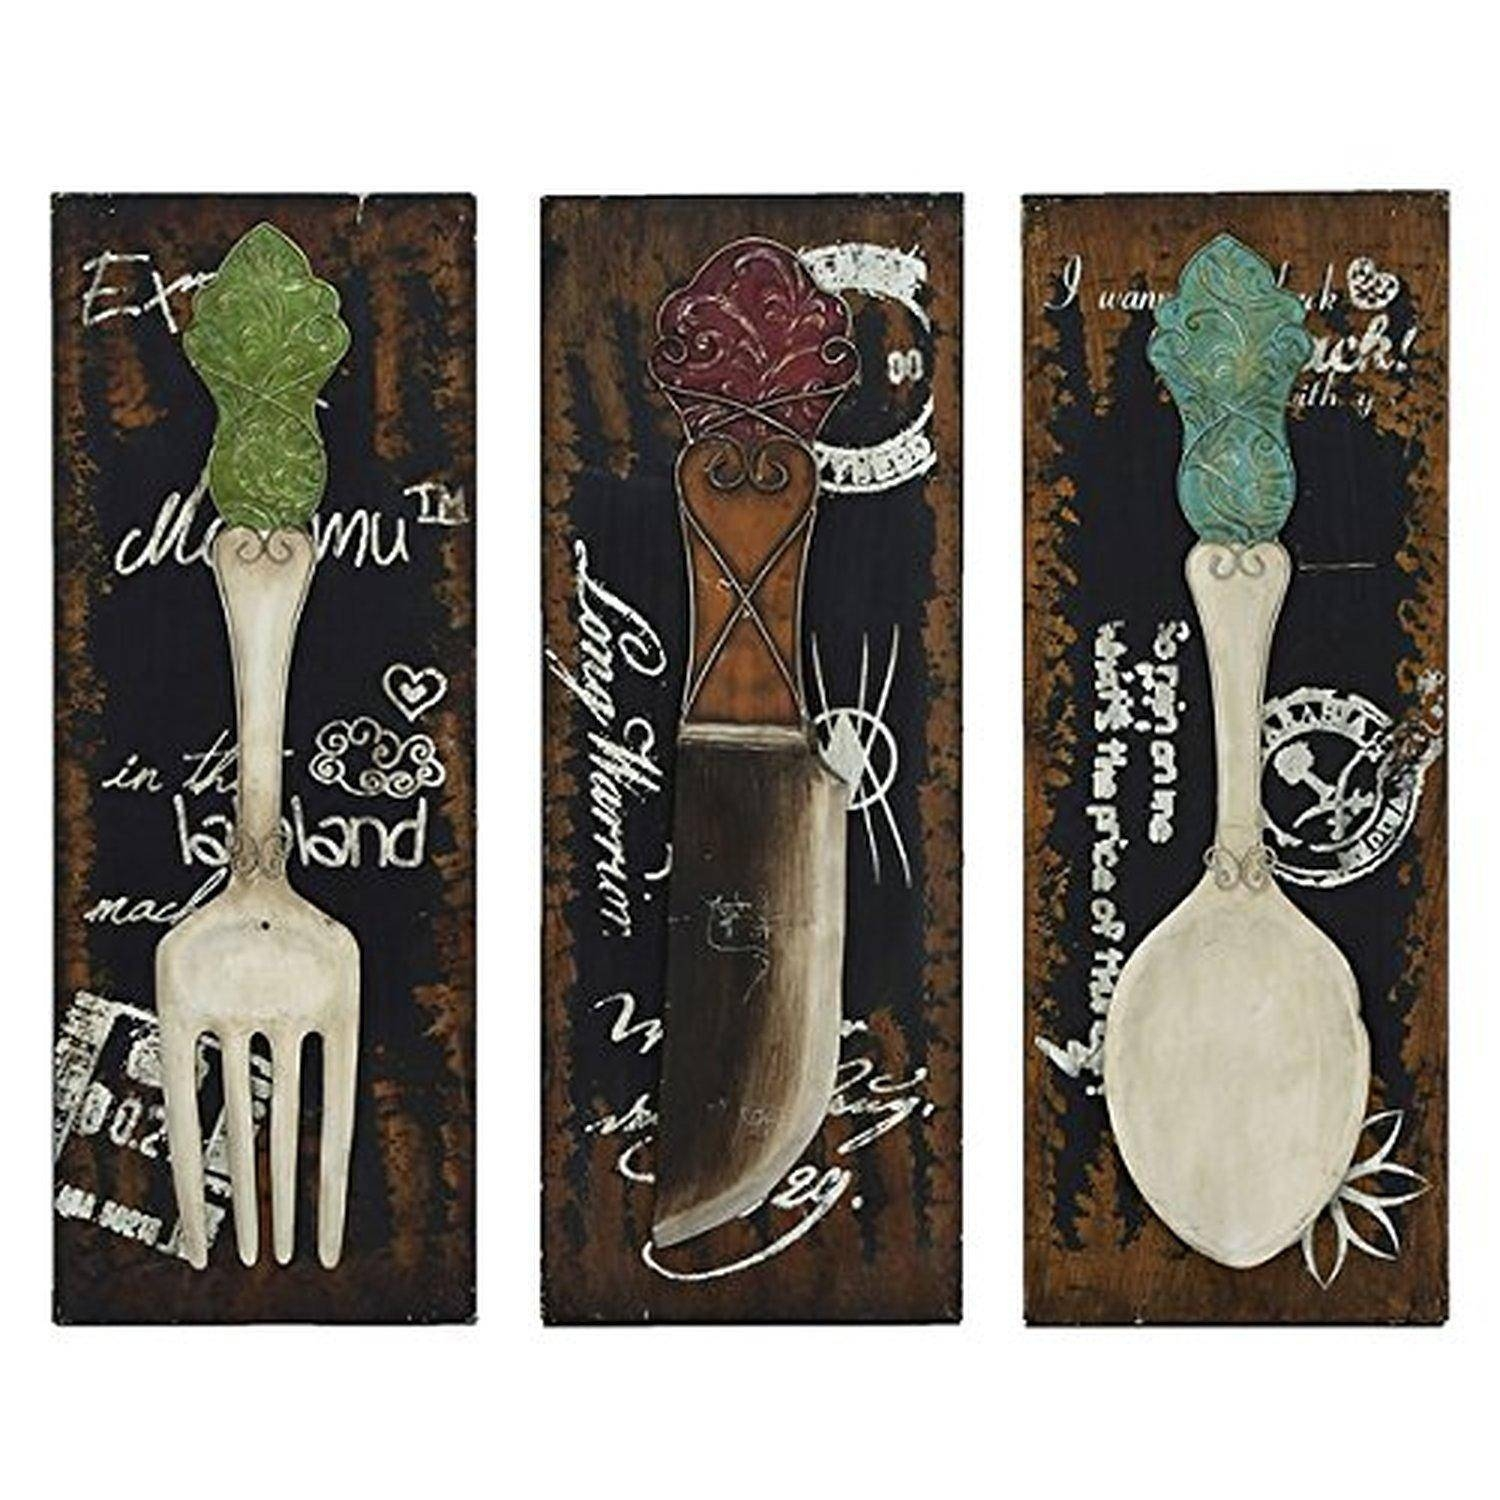 Stupendous Large Utensil Wall Decor Big Spoon And Fork Trendy Wall With Regard To Best And Newest Large Utensil Wall Art (View 20 of 20)